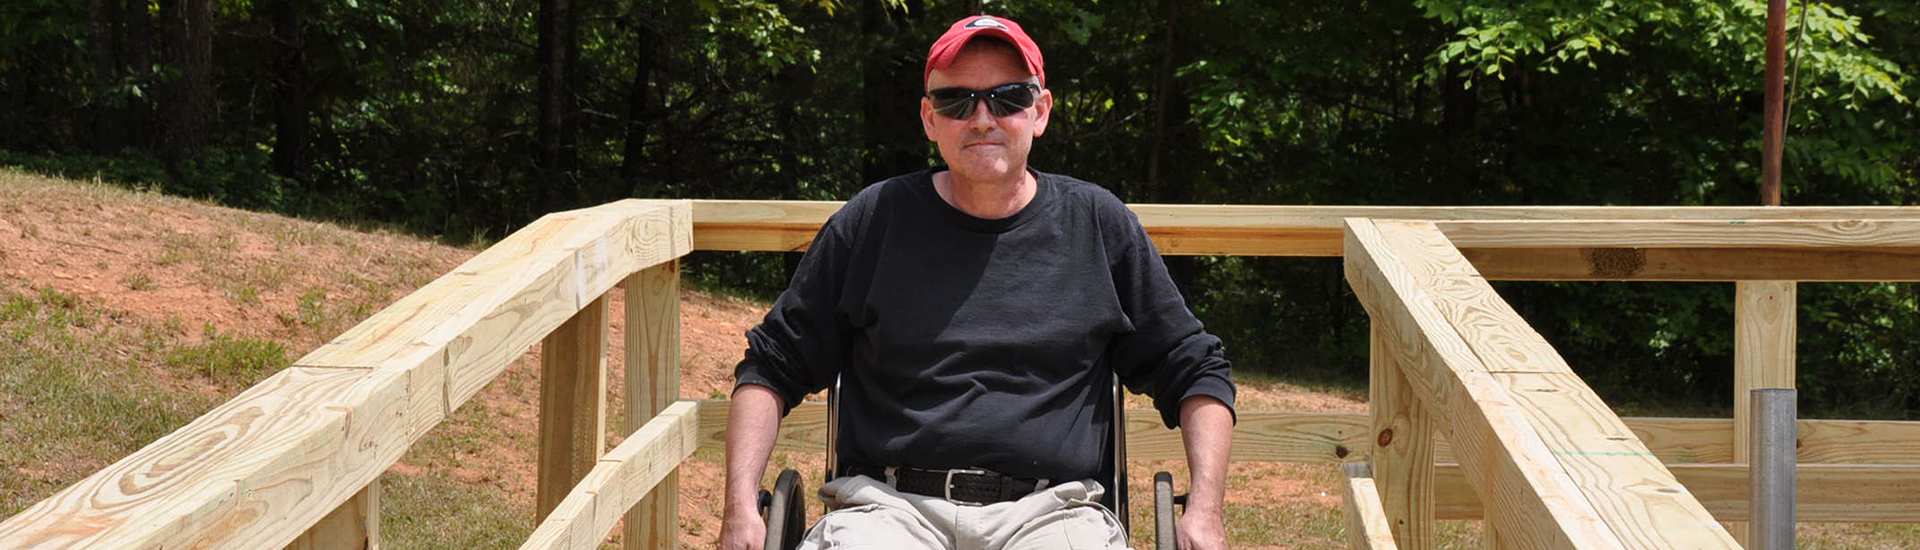 A man in a wheelchair, sunglasses and baseball cap rolls down a newly built home ramp.